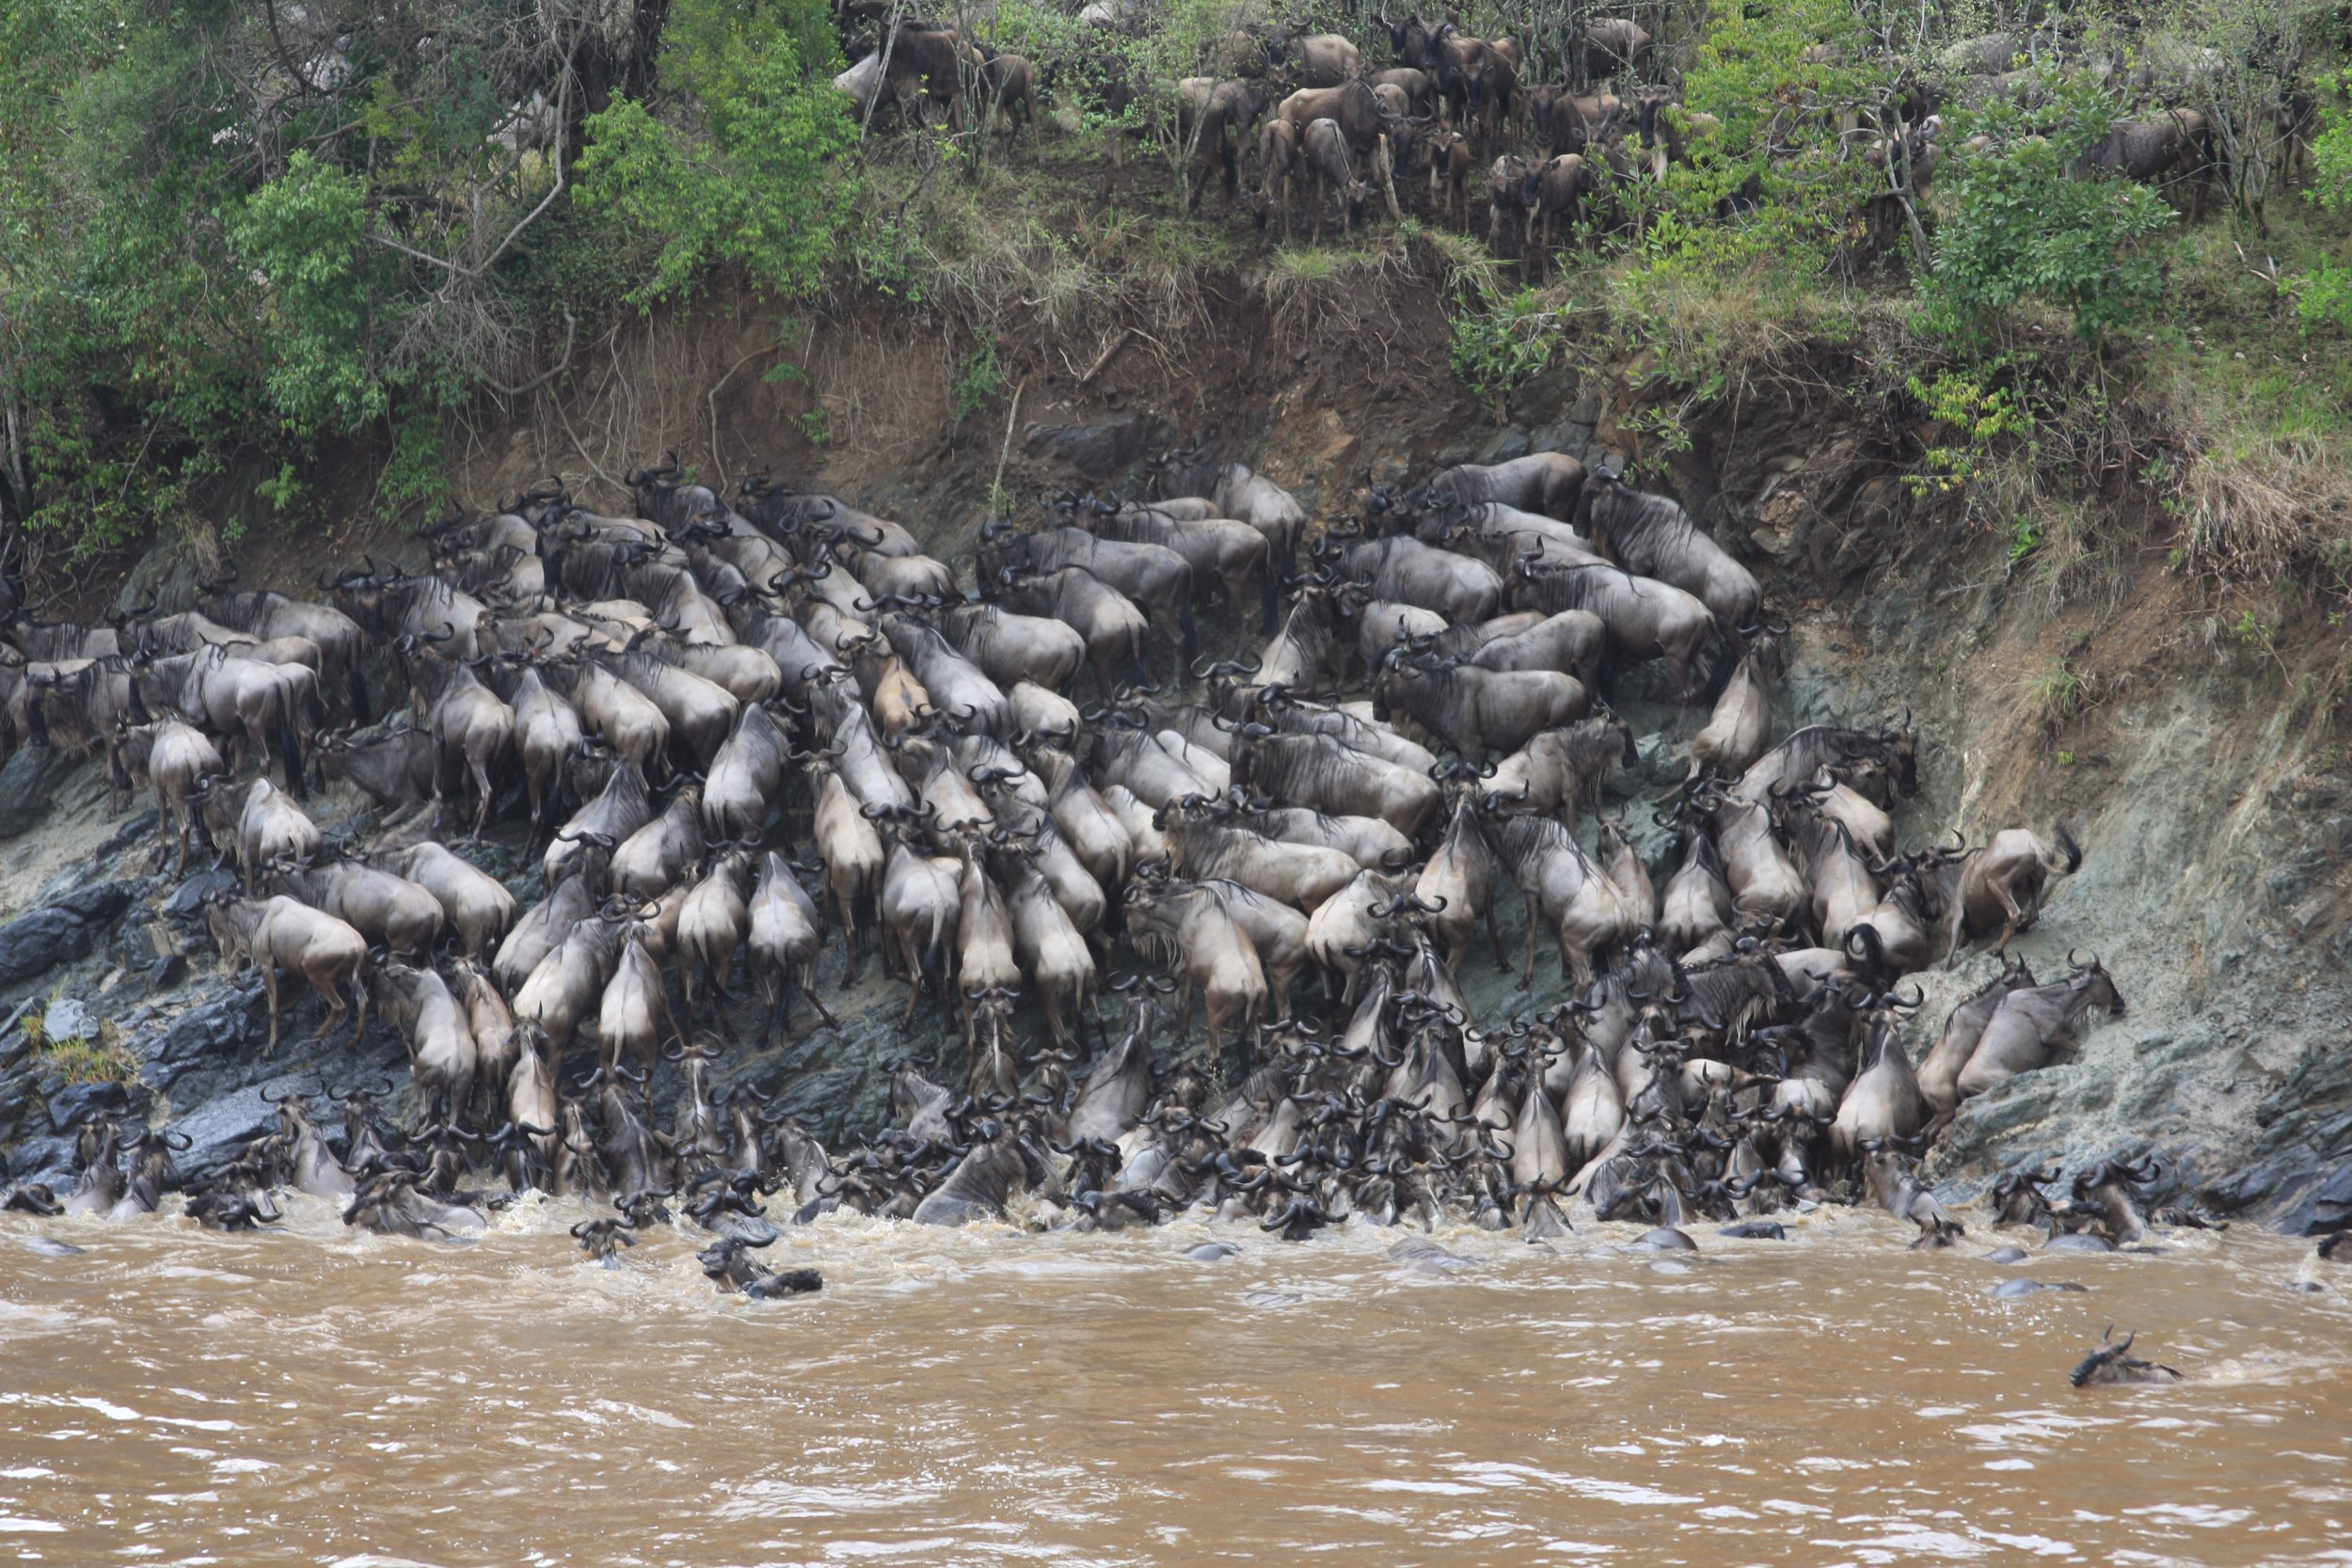 How the Serengeti ecosystem depends on mass drownings of wildebeest